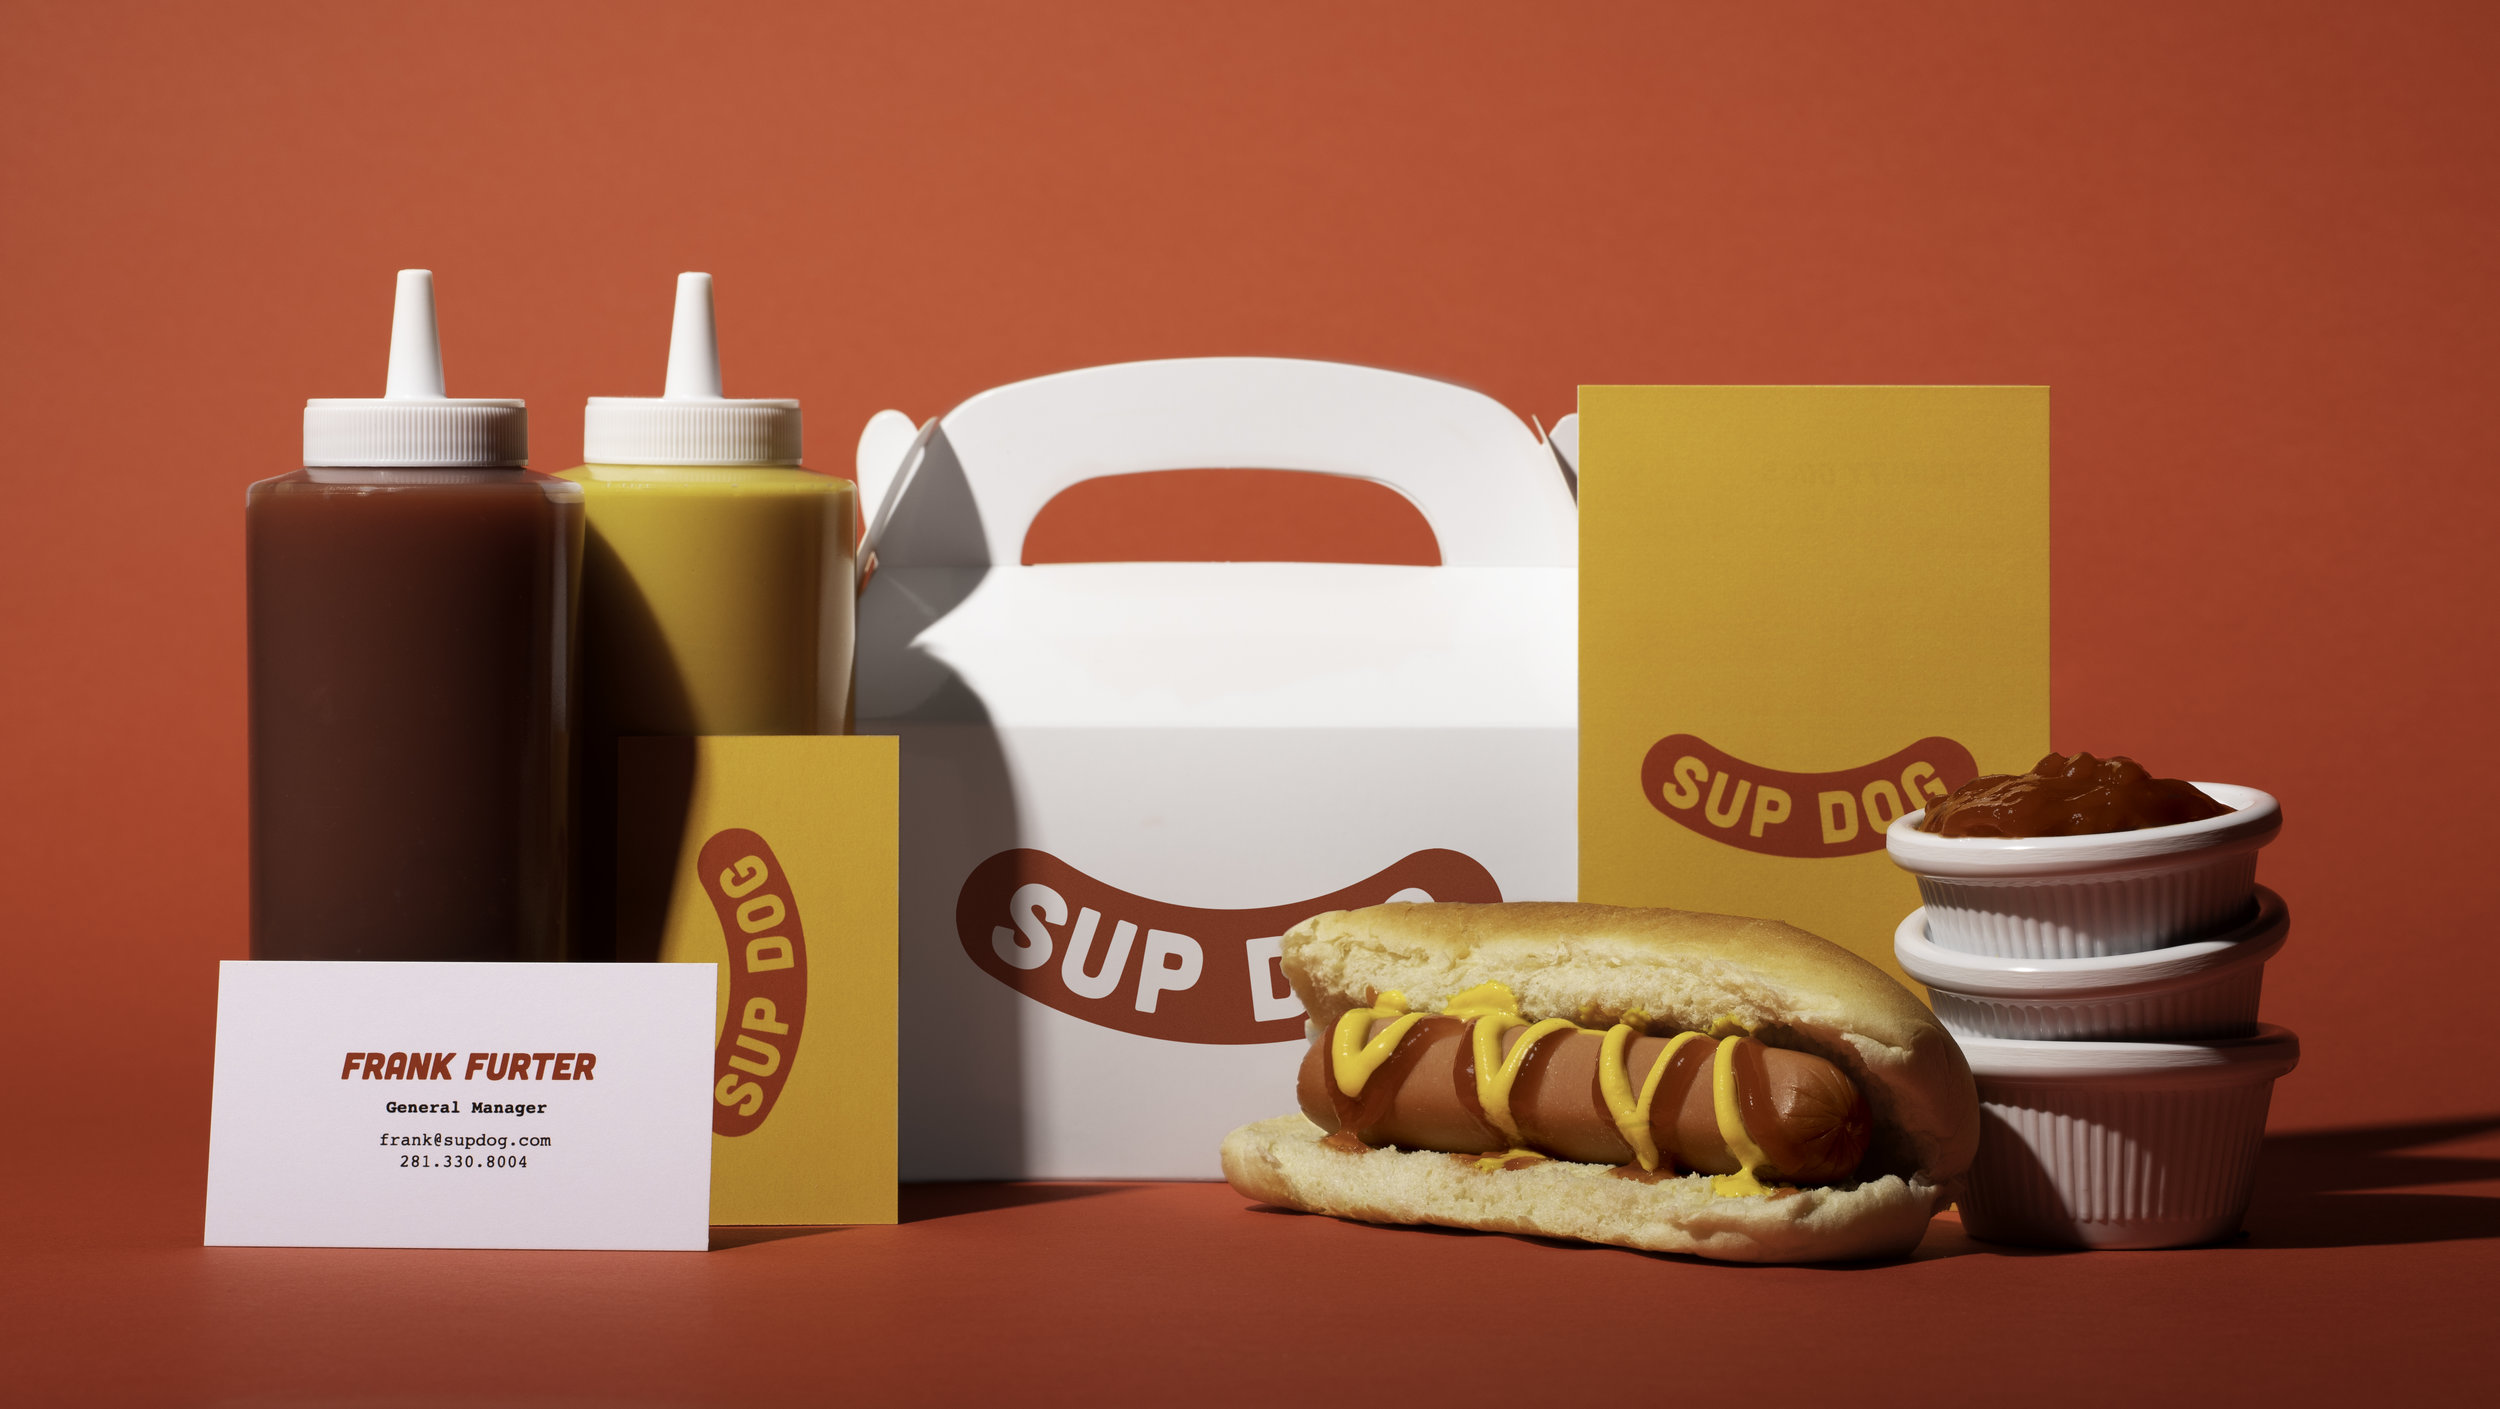 Sup Dog Collateral and food photography